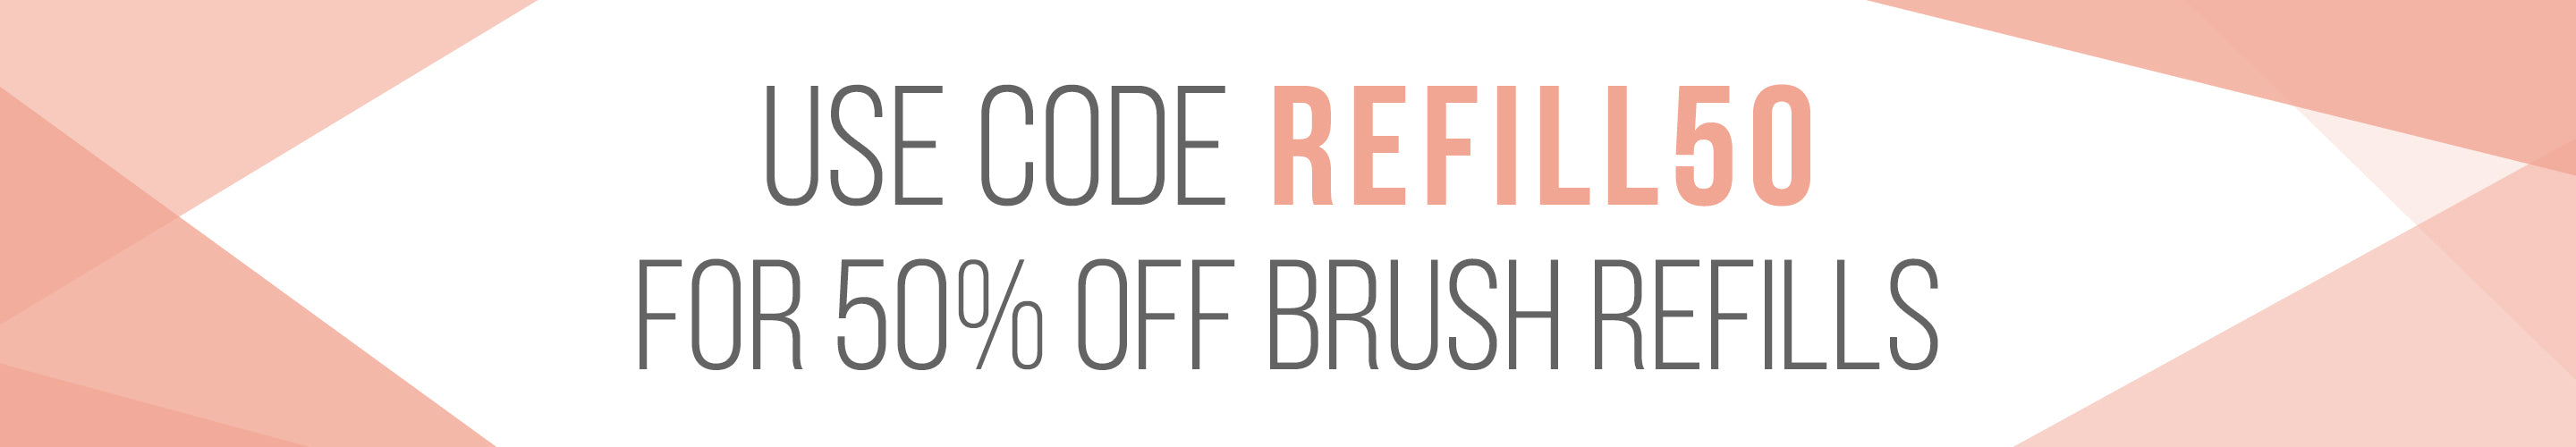 Use code REFILL50 for 50% OFF brush refills.